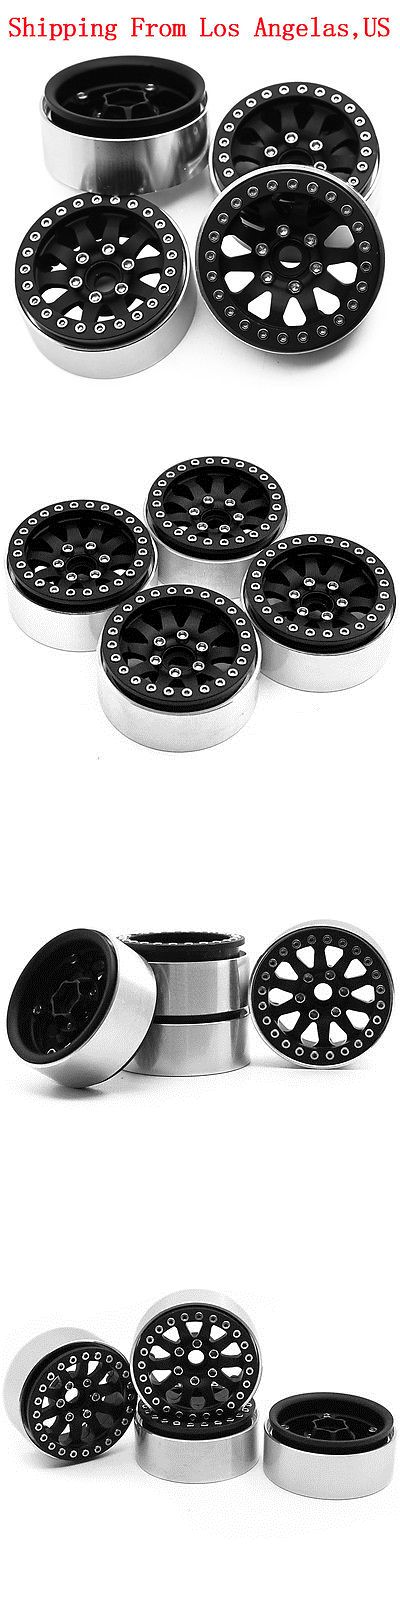 Wheels Tires Rims and Hubs 182201: 4Pcs Alloy 1.9 Beadlock Wheel Rims For 1 10 Axial Scx10 D90 Cc01 Rc Crawler-Us -> BUY IT NOW ONLY: $55 on eBay!